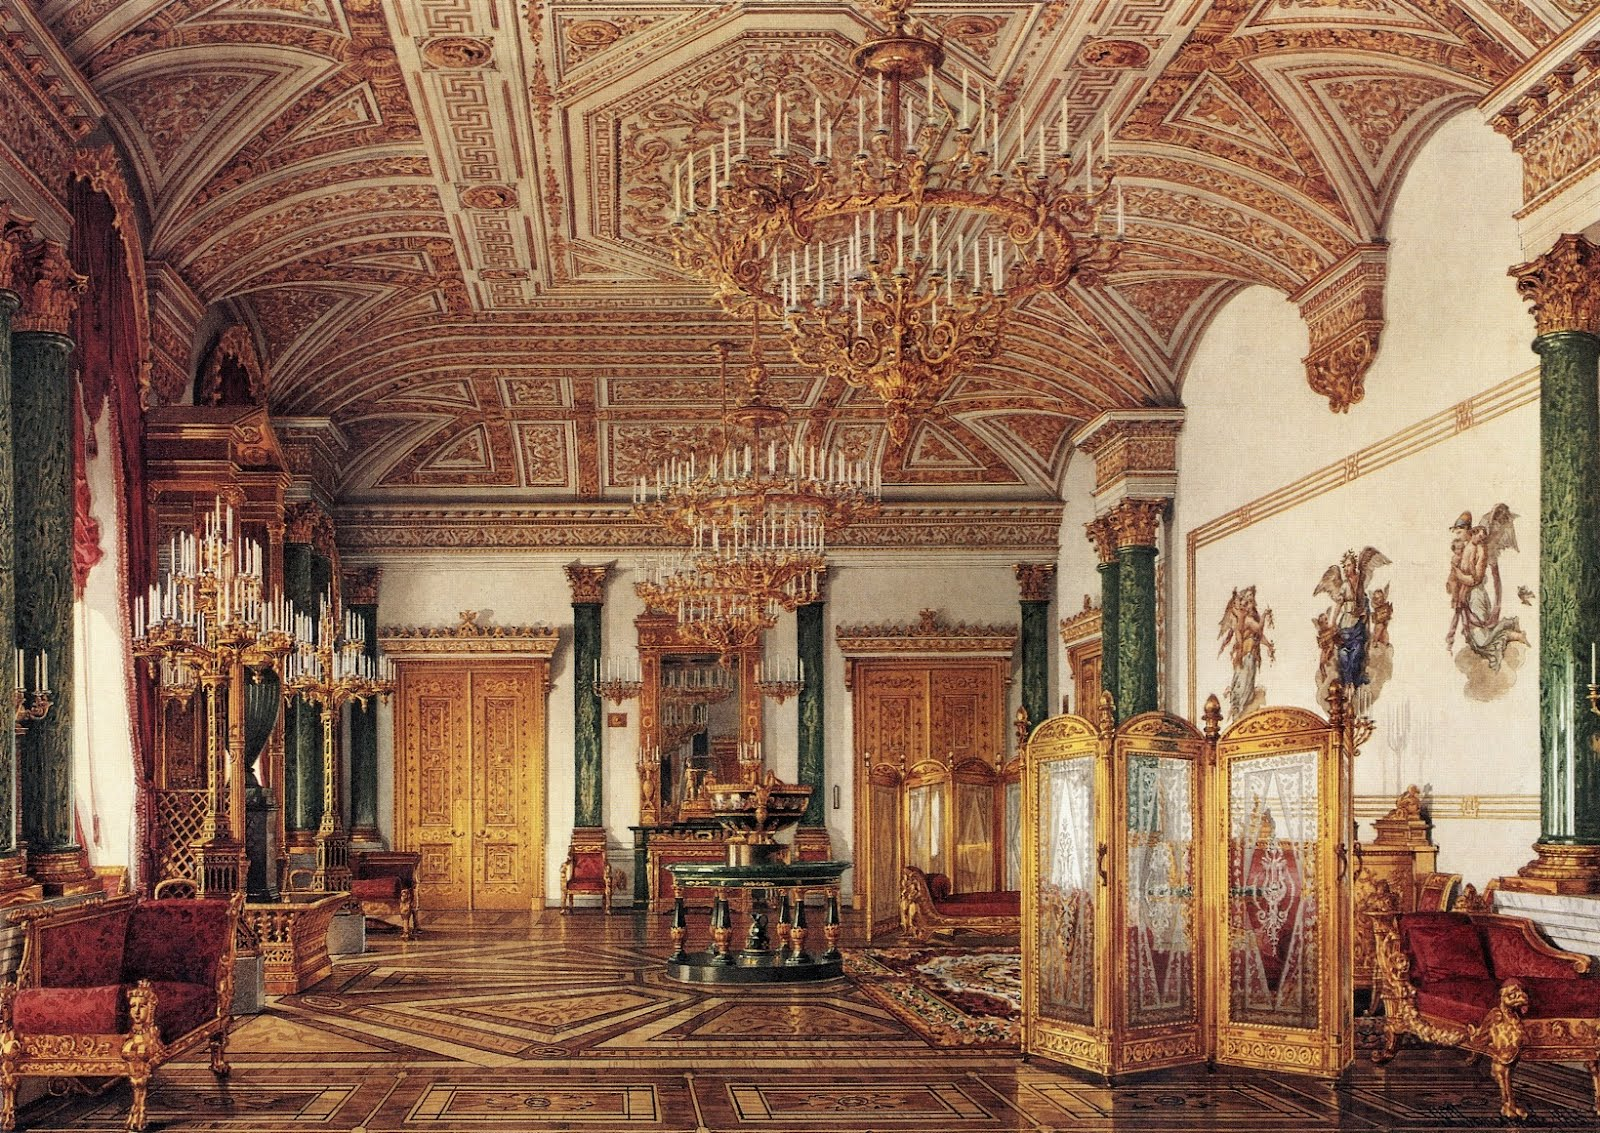 The Malachite Drawing Room